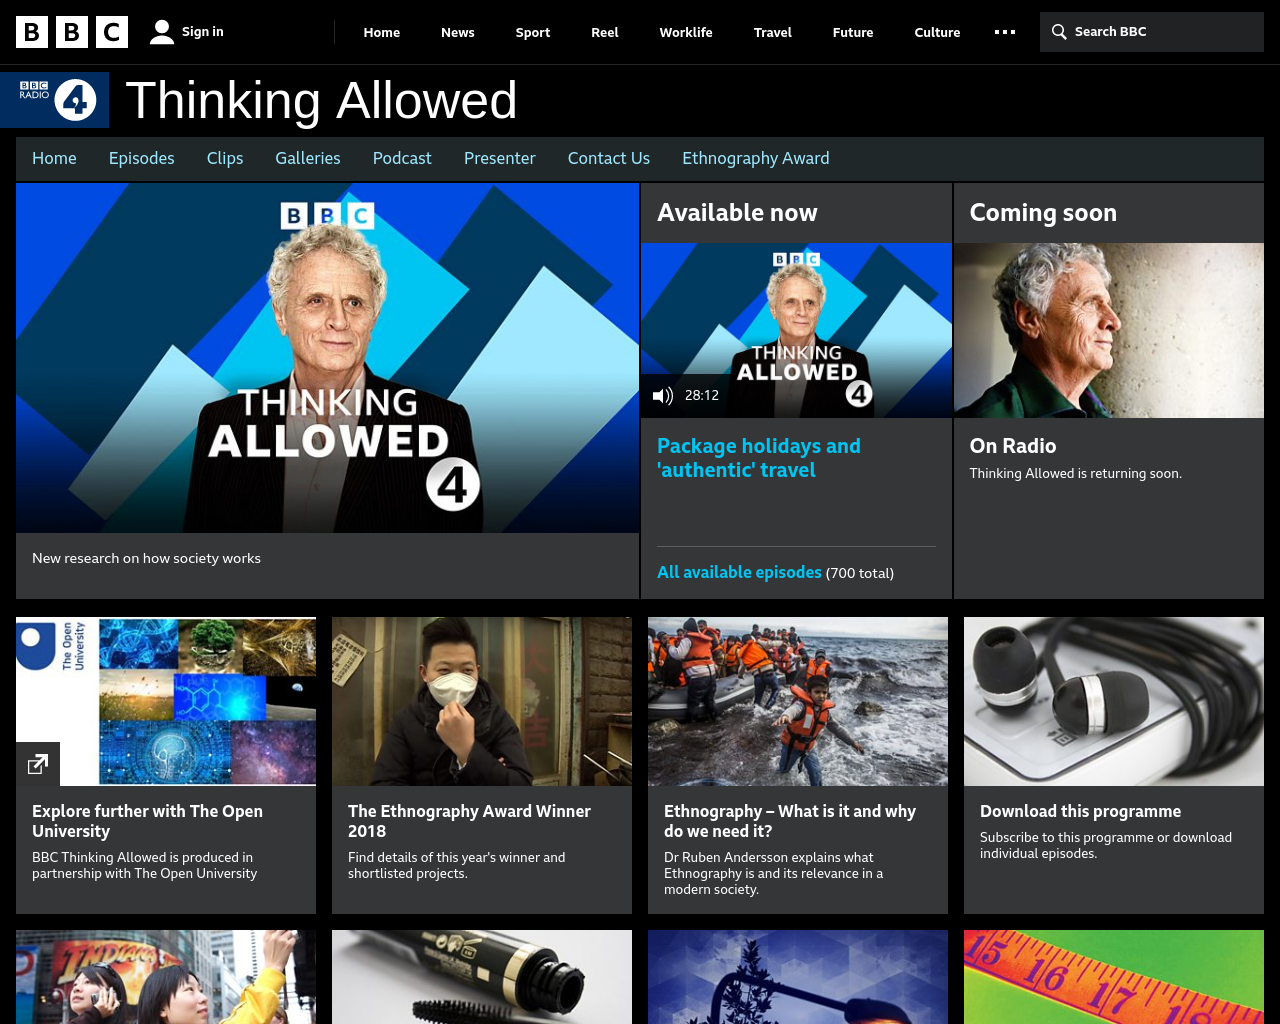 BBC Radio 4 Thinking Allowed